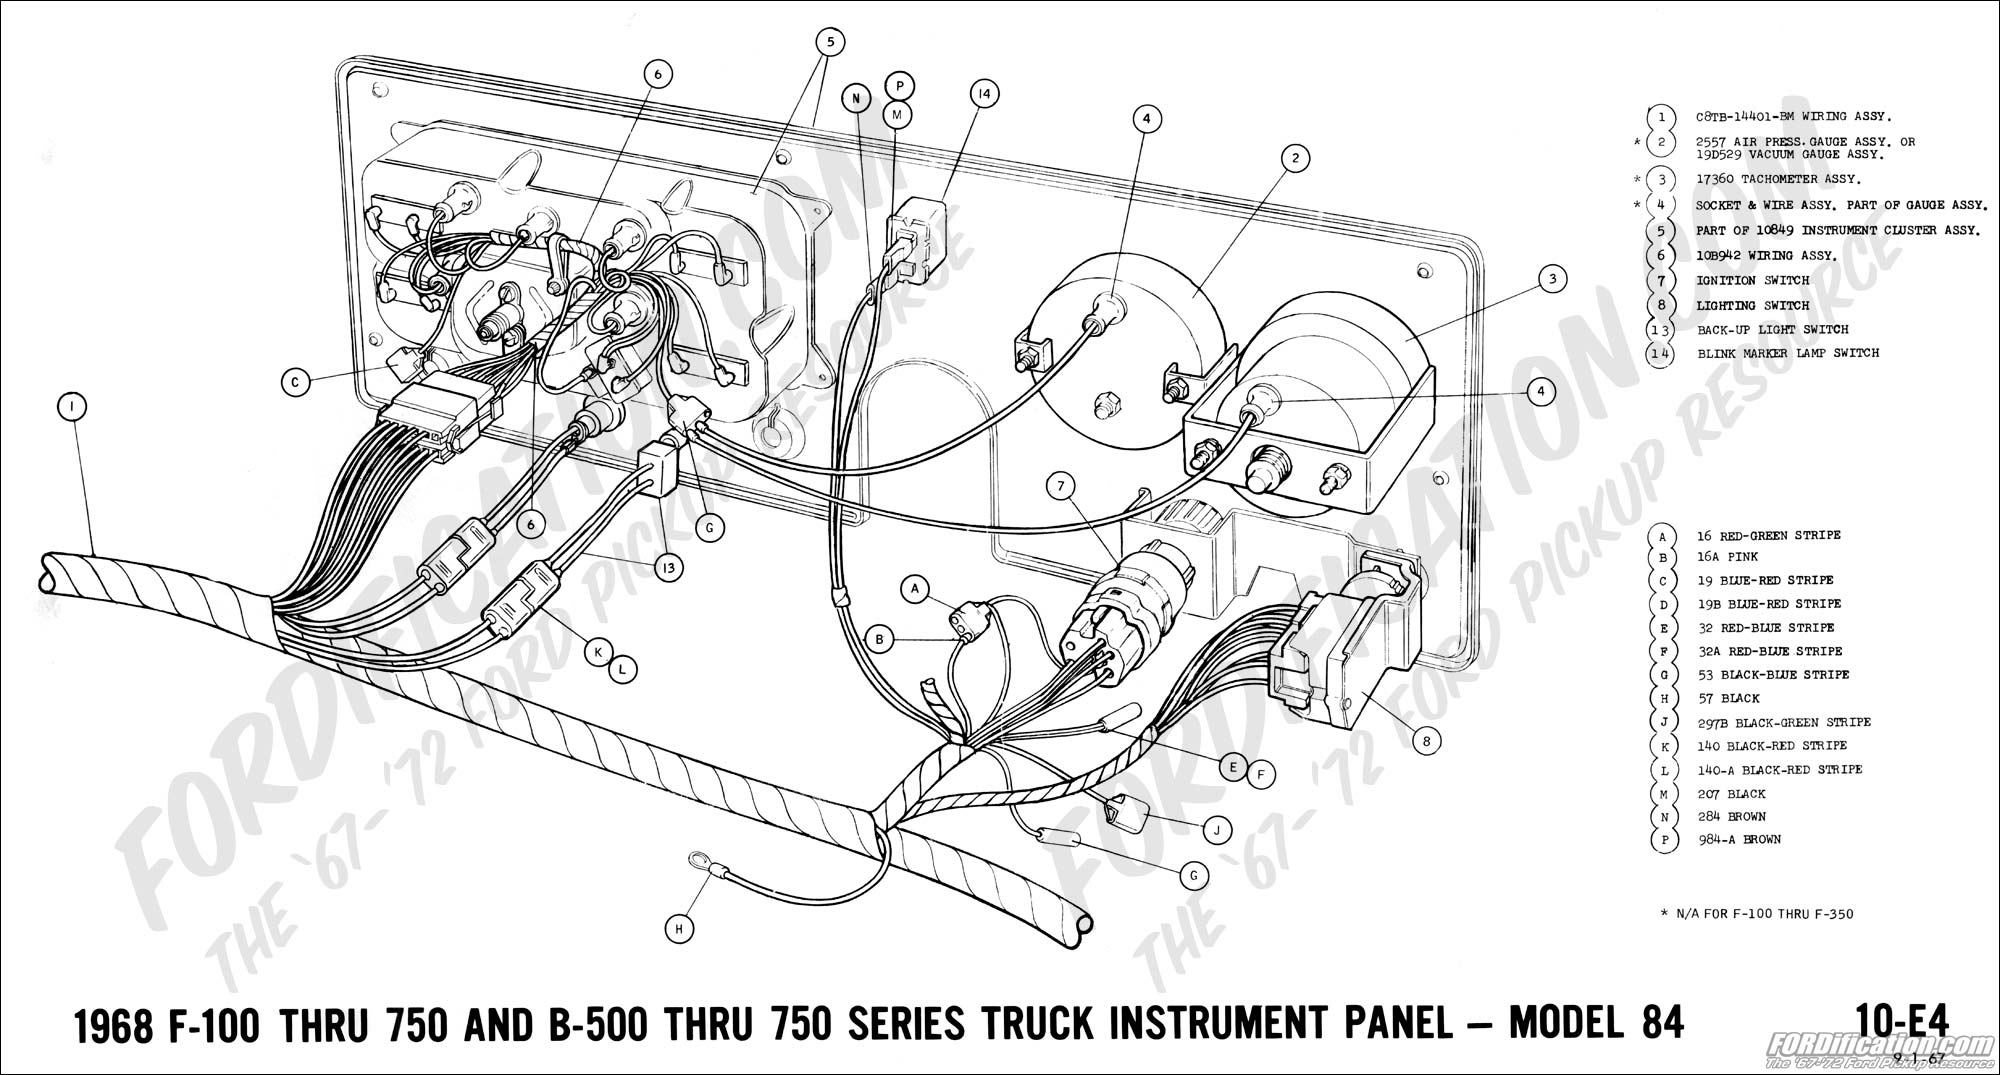 ford f 350 alternator wiring diagram with Schematics H on 350 V8 Engine Diagram 1993 additionally RepairGuideContent likewise 4r70w Transmission Wiring Diagram likewise 79 Ford Truck Duraspark Ignition Wiring Diagram furthermore 1977 Chevy Trucks.